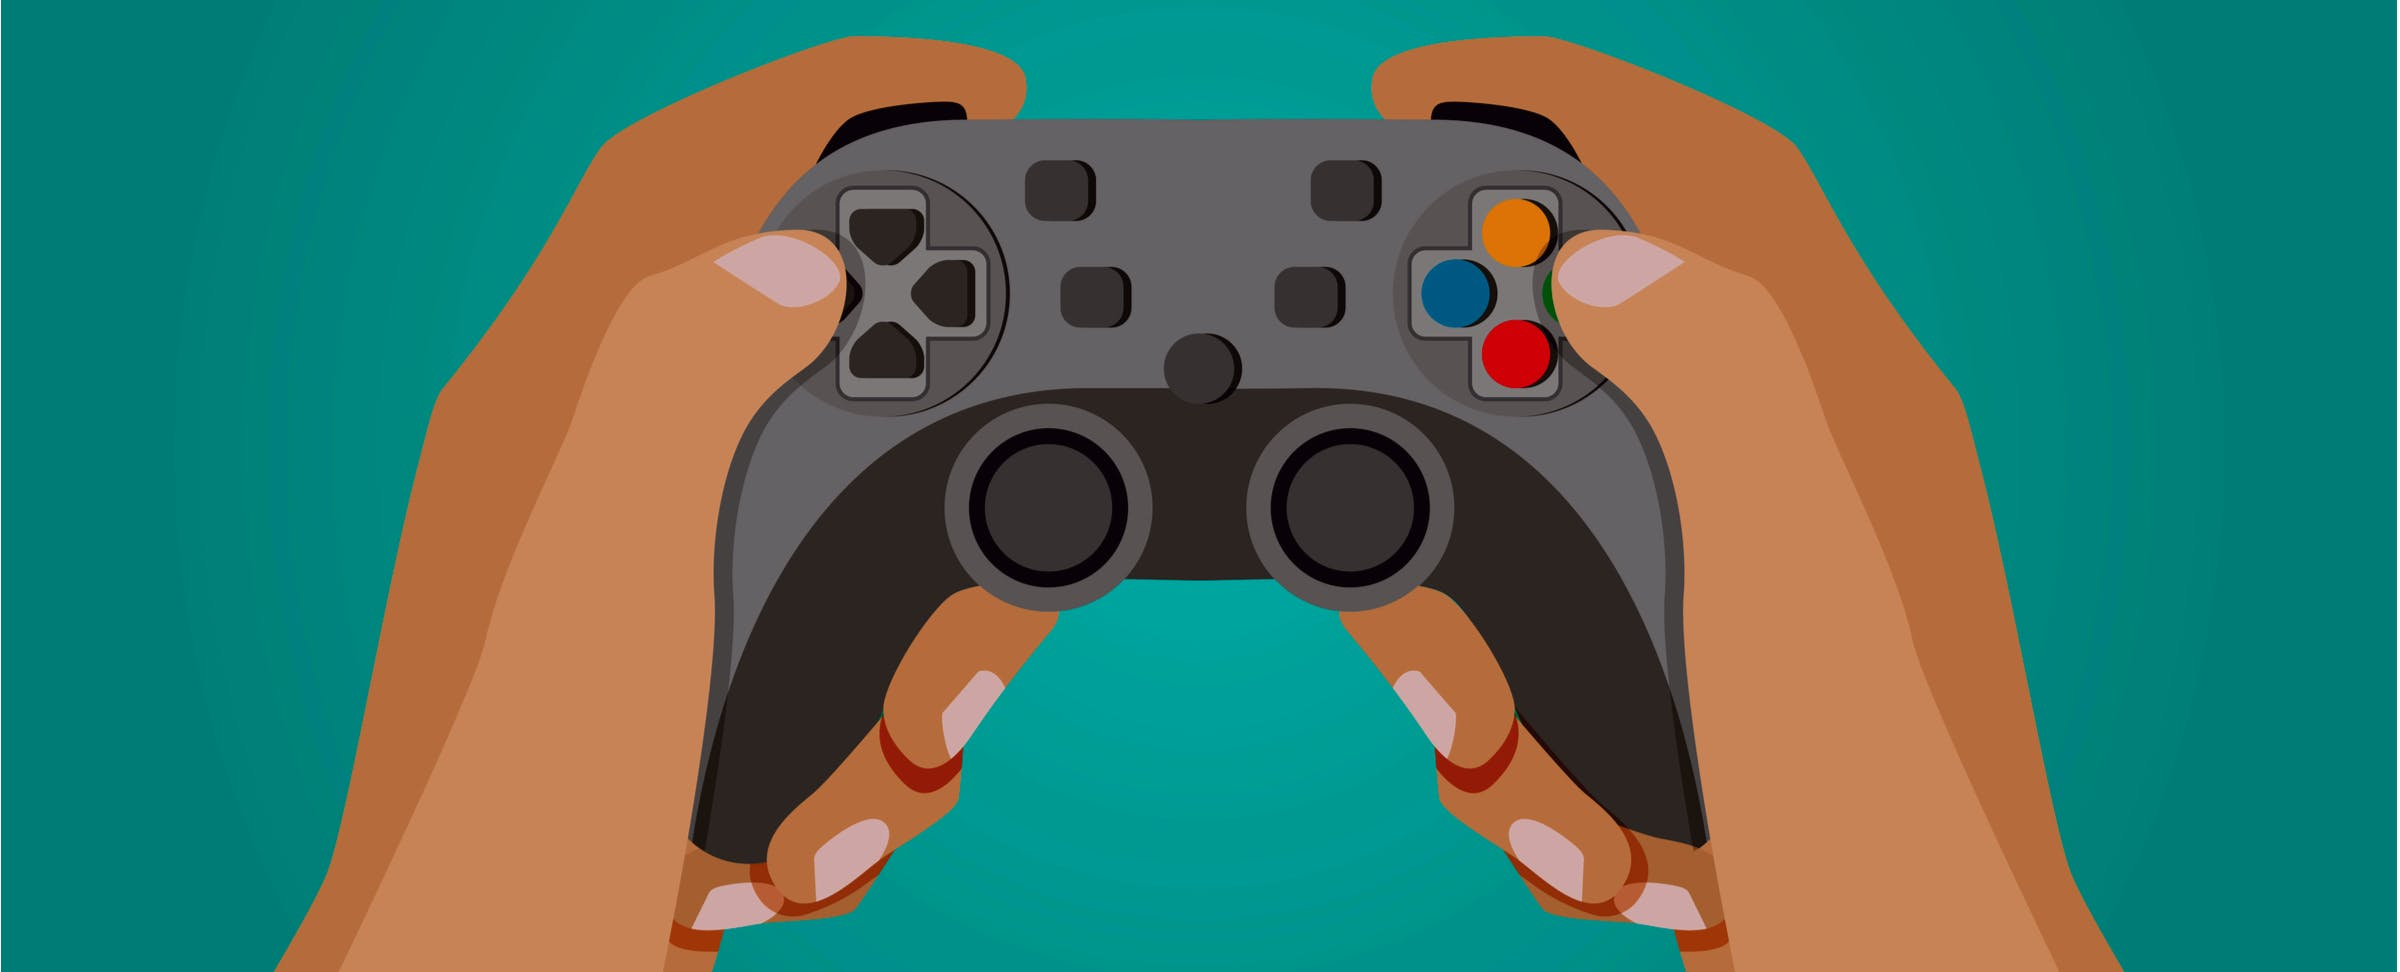 Educators Share How Video Games Can Help Kids Build Sel